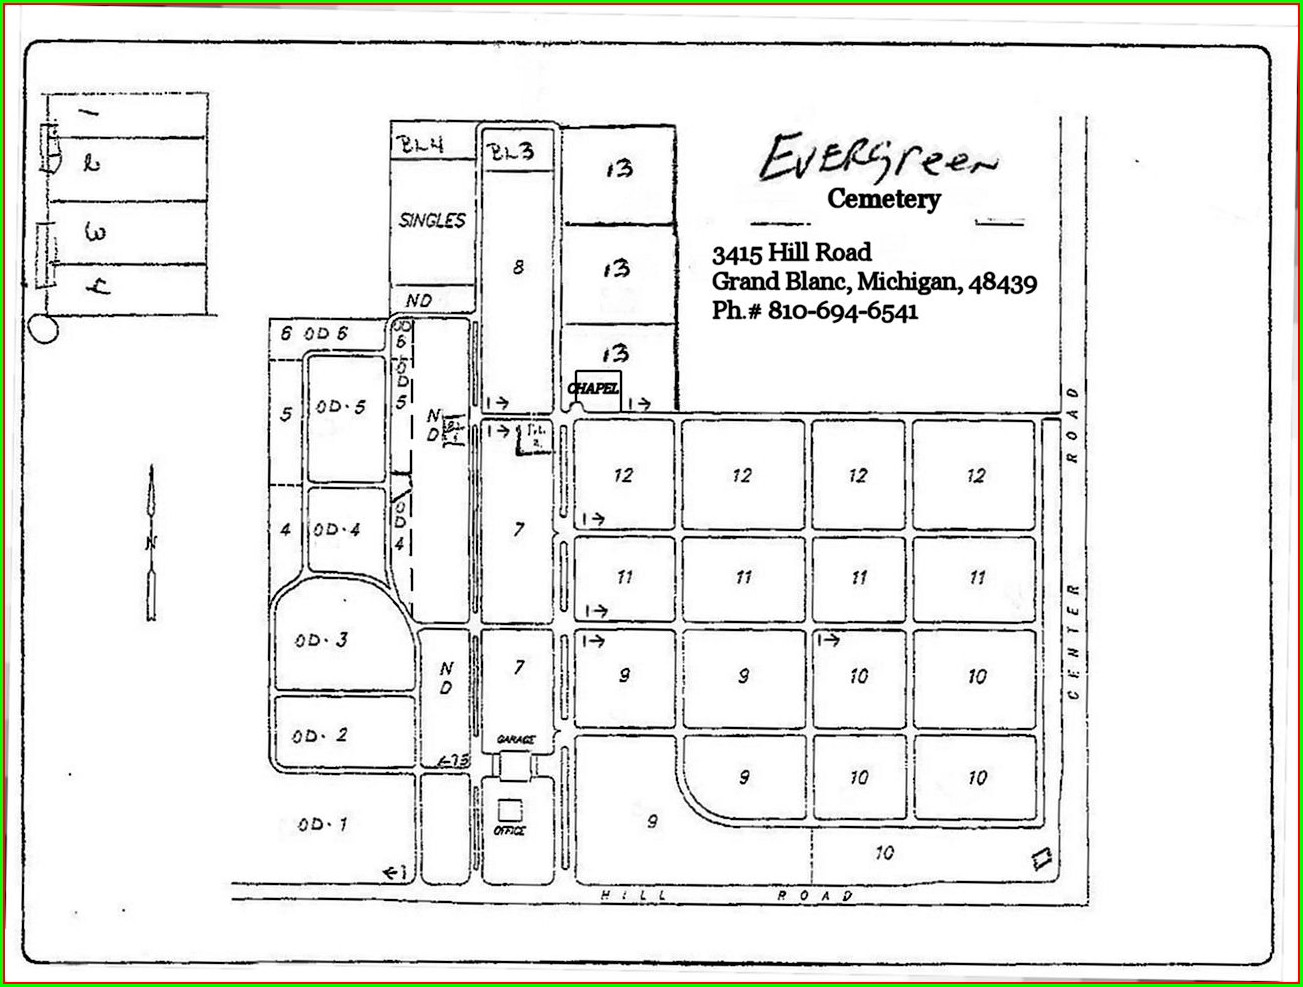 Evergreen Cemetery Cemetery Burial Plot Maps